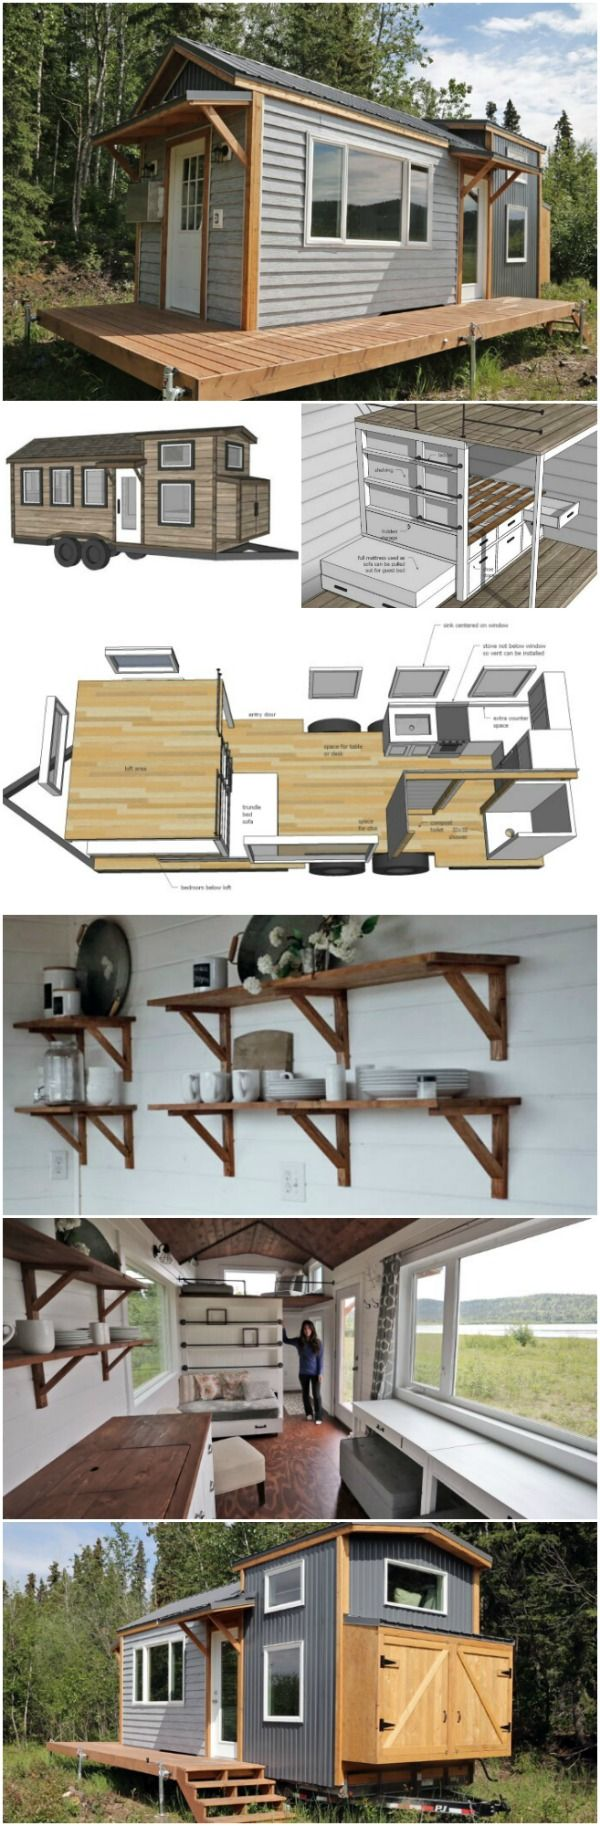 Ana and Jacob are both professionals when it comes to construction, so they know what they are doing, and it shows. They are also very generous, and so they have provided free plans for building a tiny house like theirs. Here is a shot of the interior of the tiny house. This gives a wonderful feel for how cozy it is! #cozy #tinyhouse